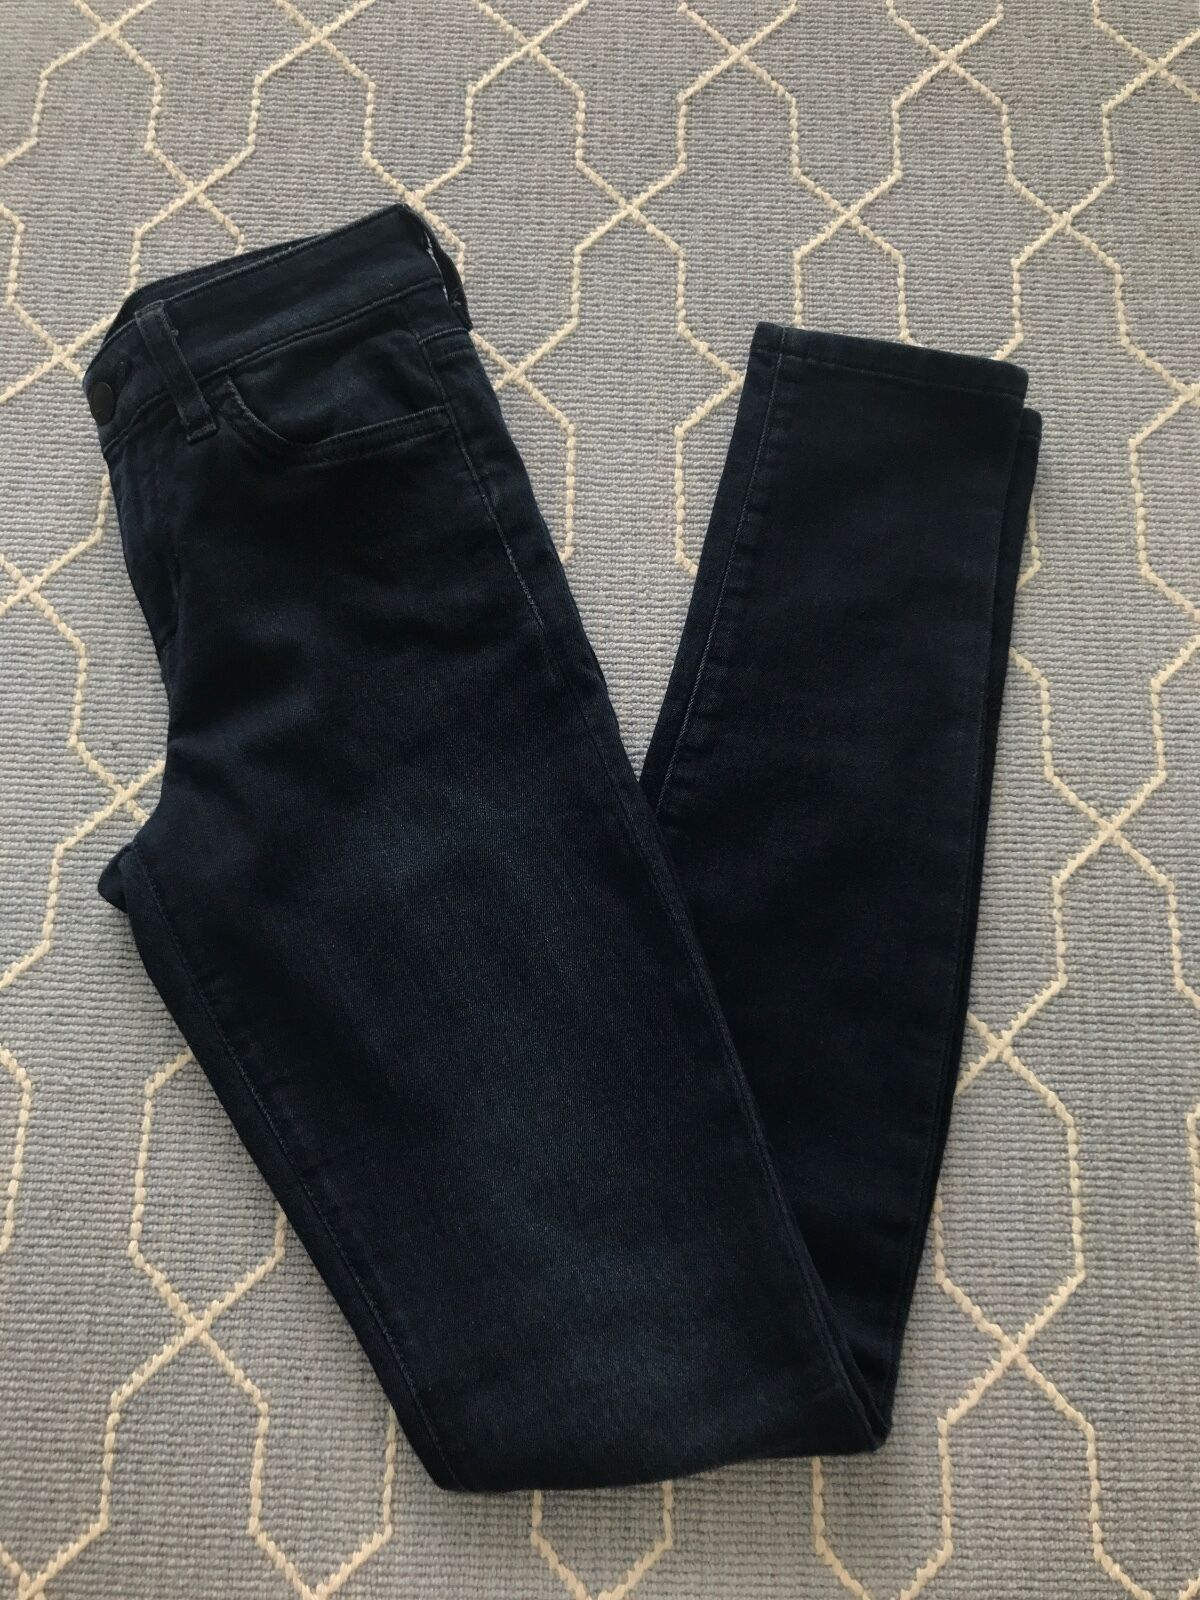 Joe's Jeans The Skinny Ankle Debbie High Rise Dark Wash Stretchy Size 24 GUC